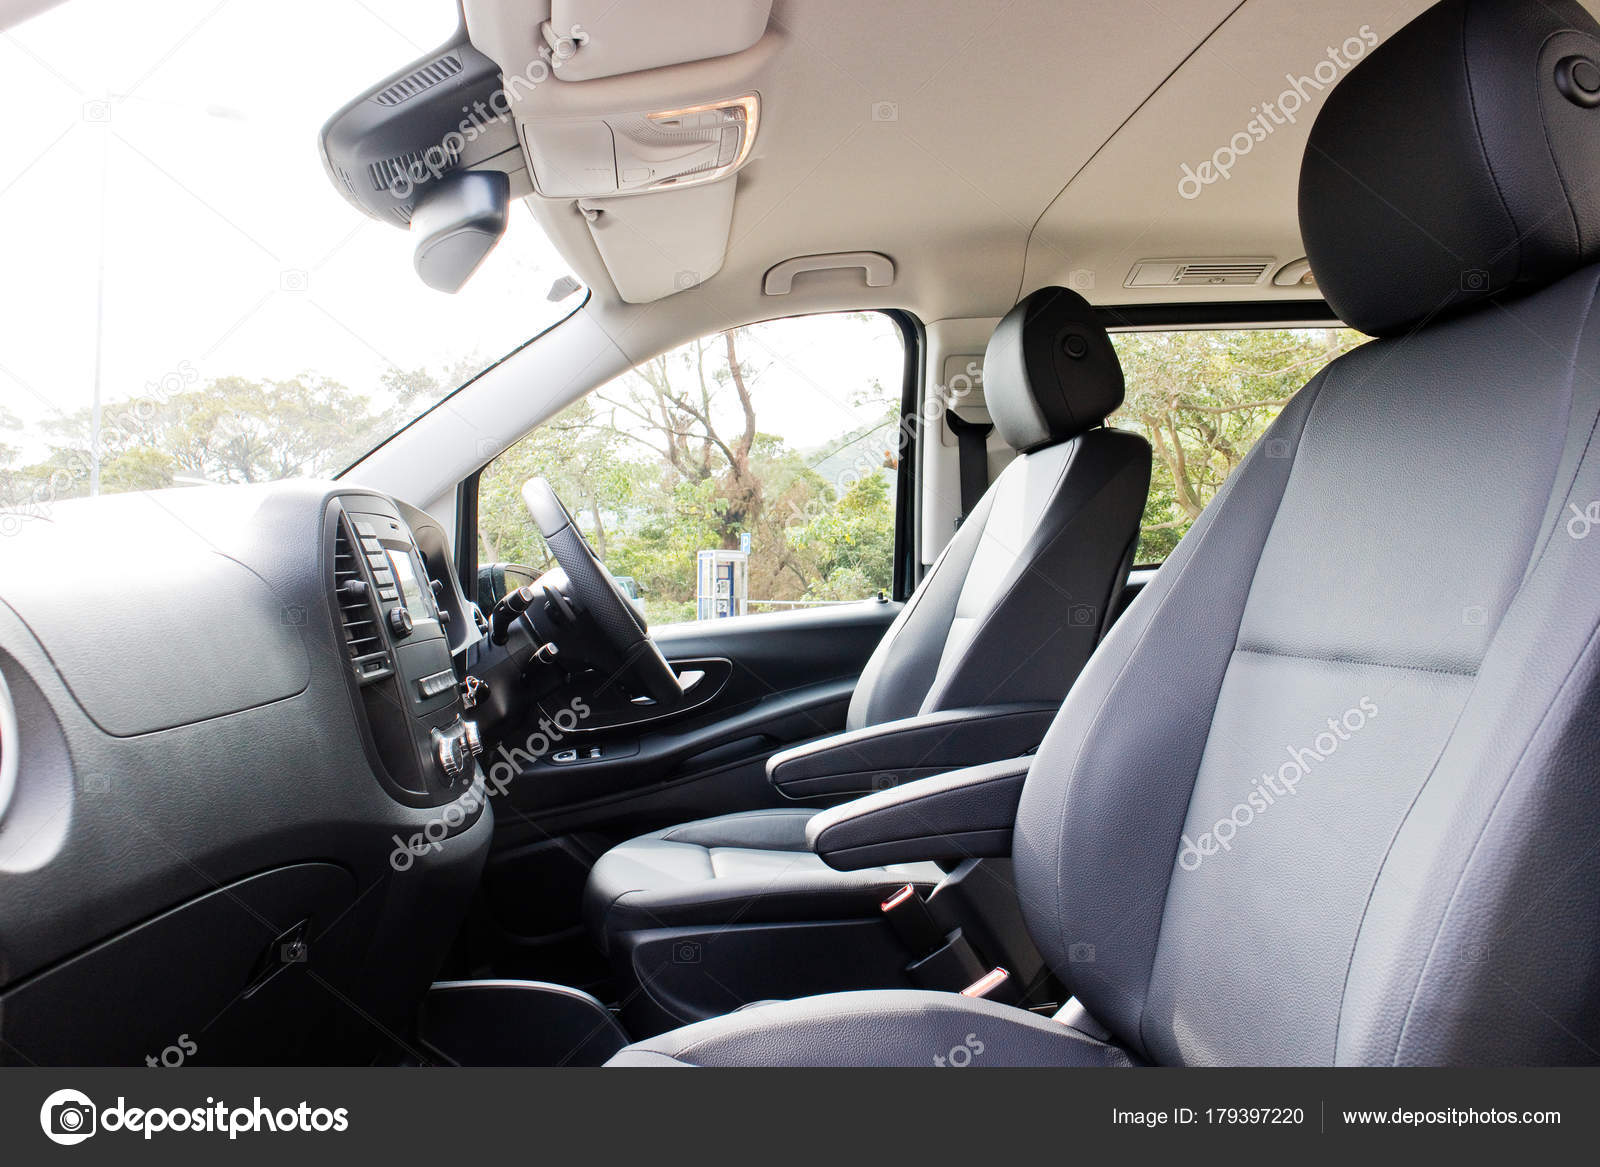 Mercedes Benz Vito 2017 Interieur Redactionele Stockfoto